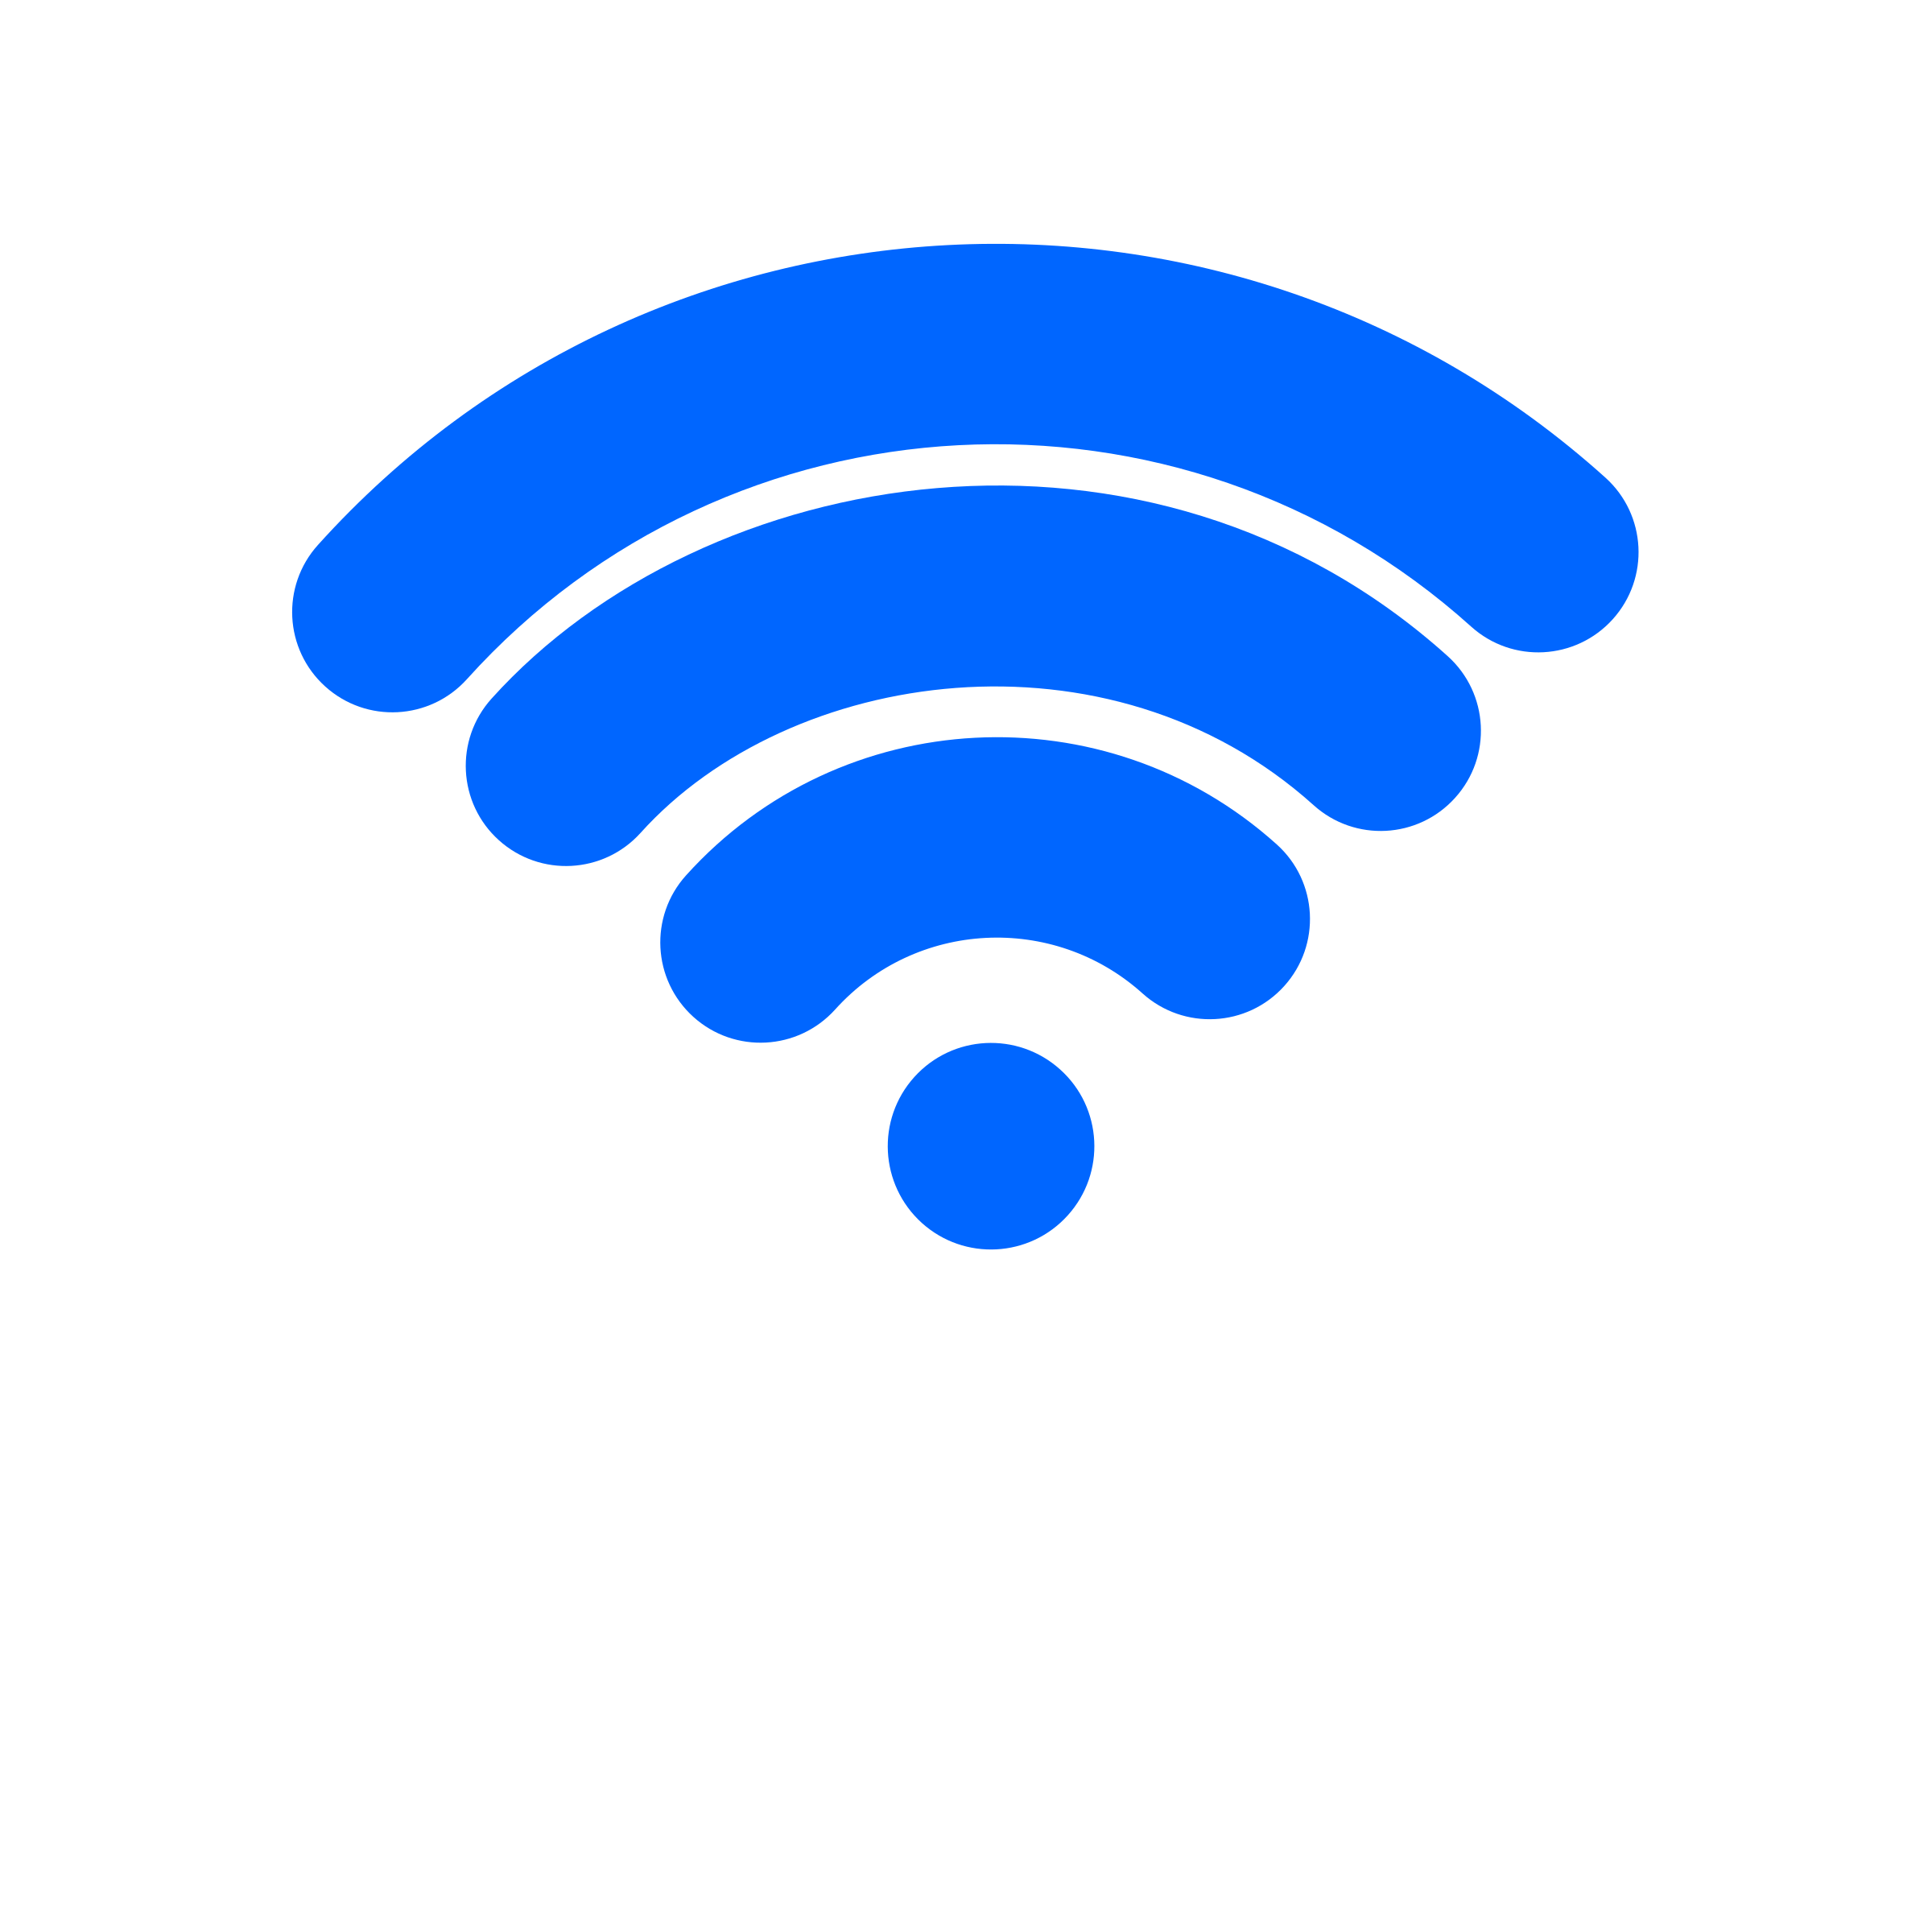 Internet clipart connection. How do wifi headphones